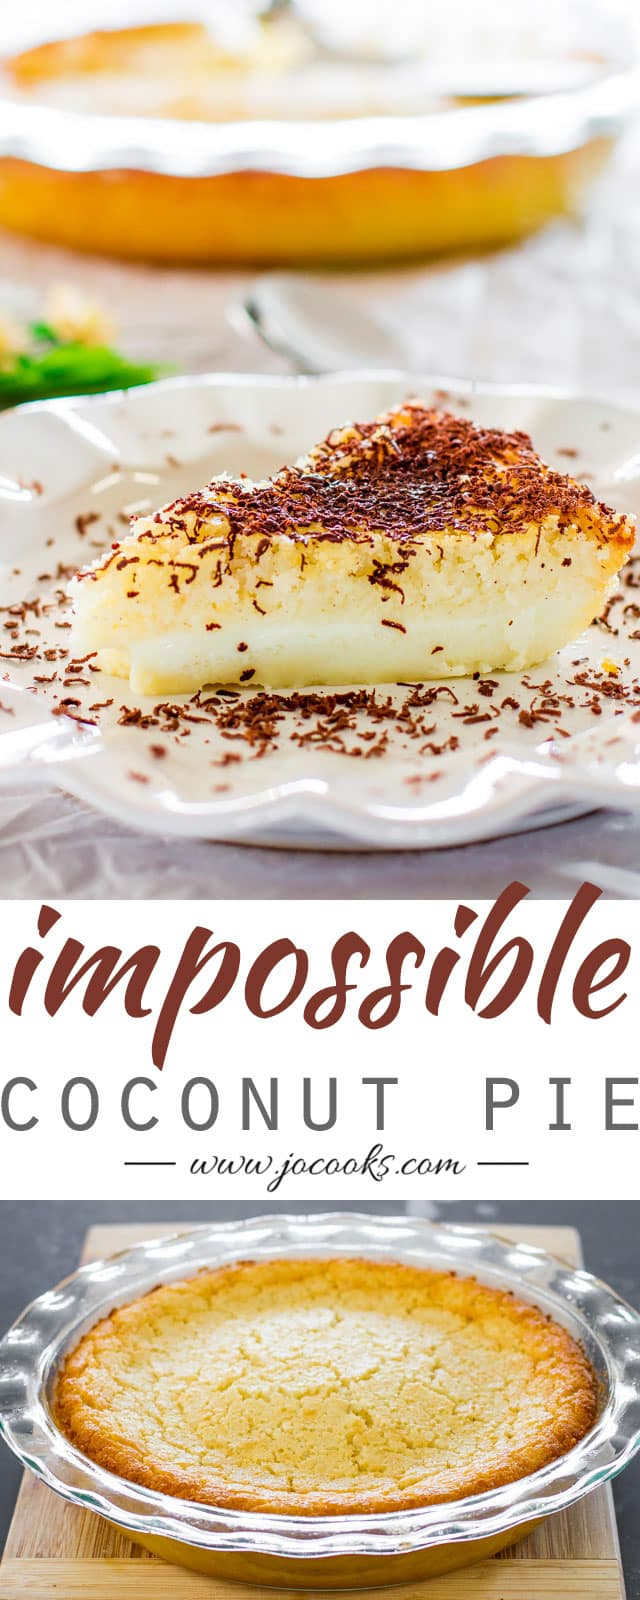 impossible-coconut-pie-collage